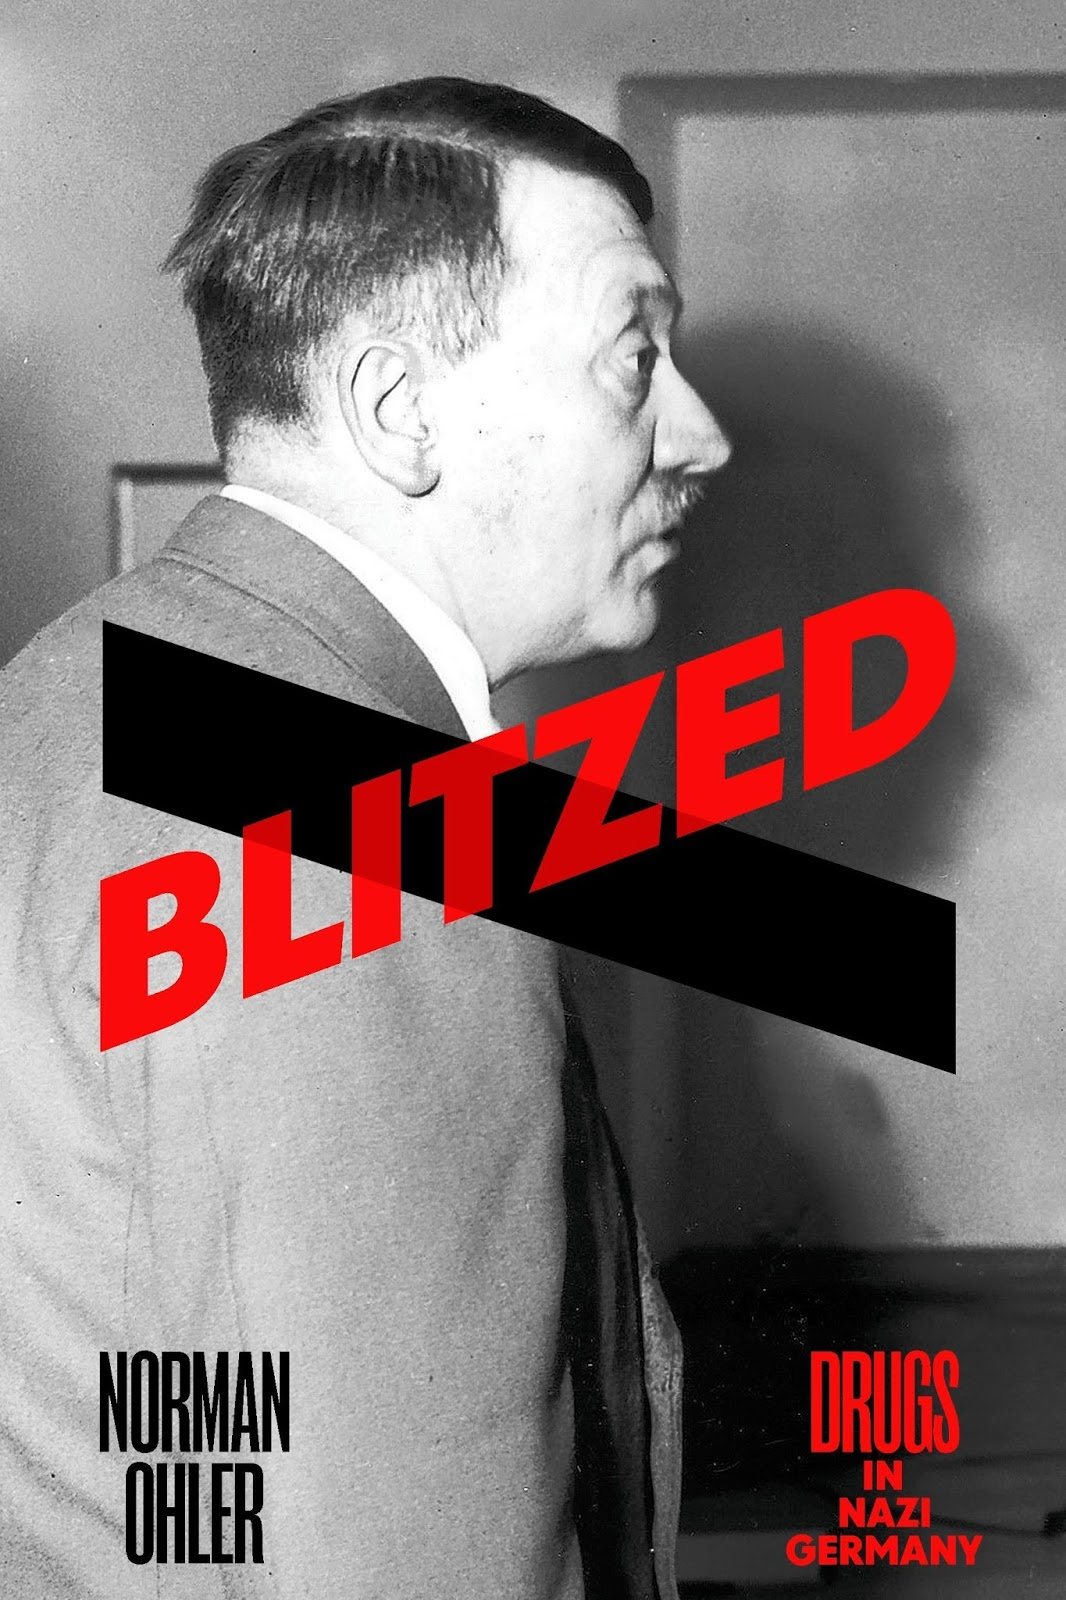 A review of Blitzed: Drugs in Nazi Germany by Norman Ohler -